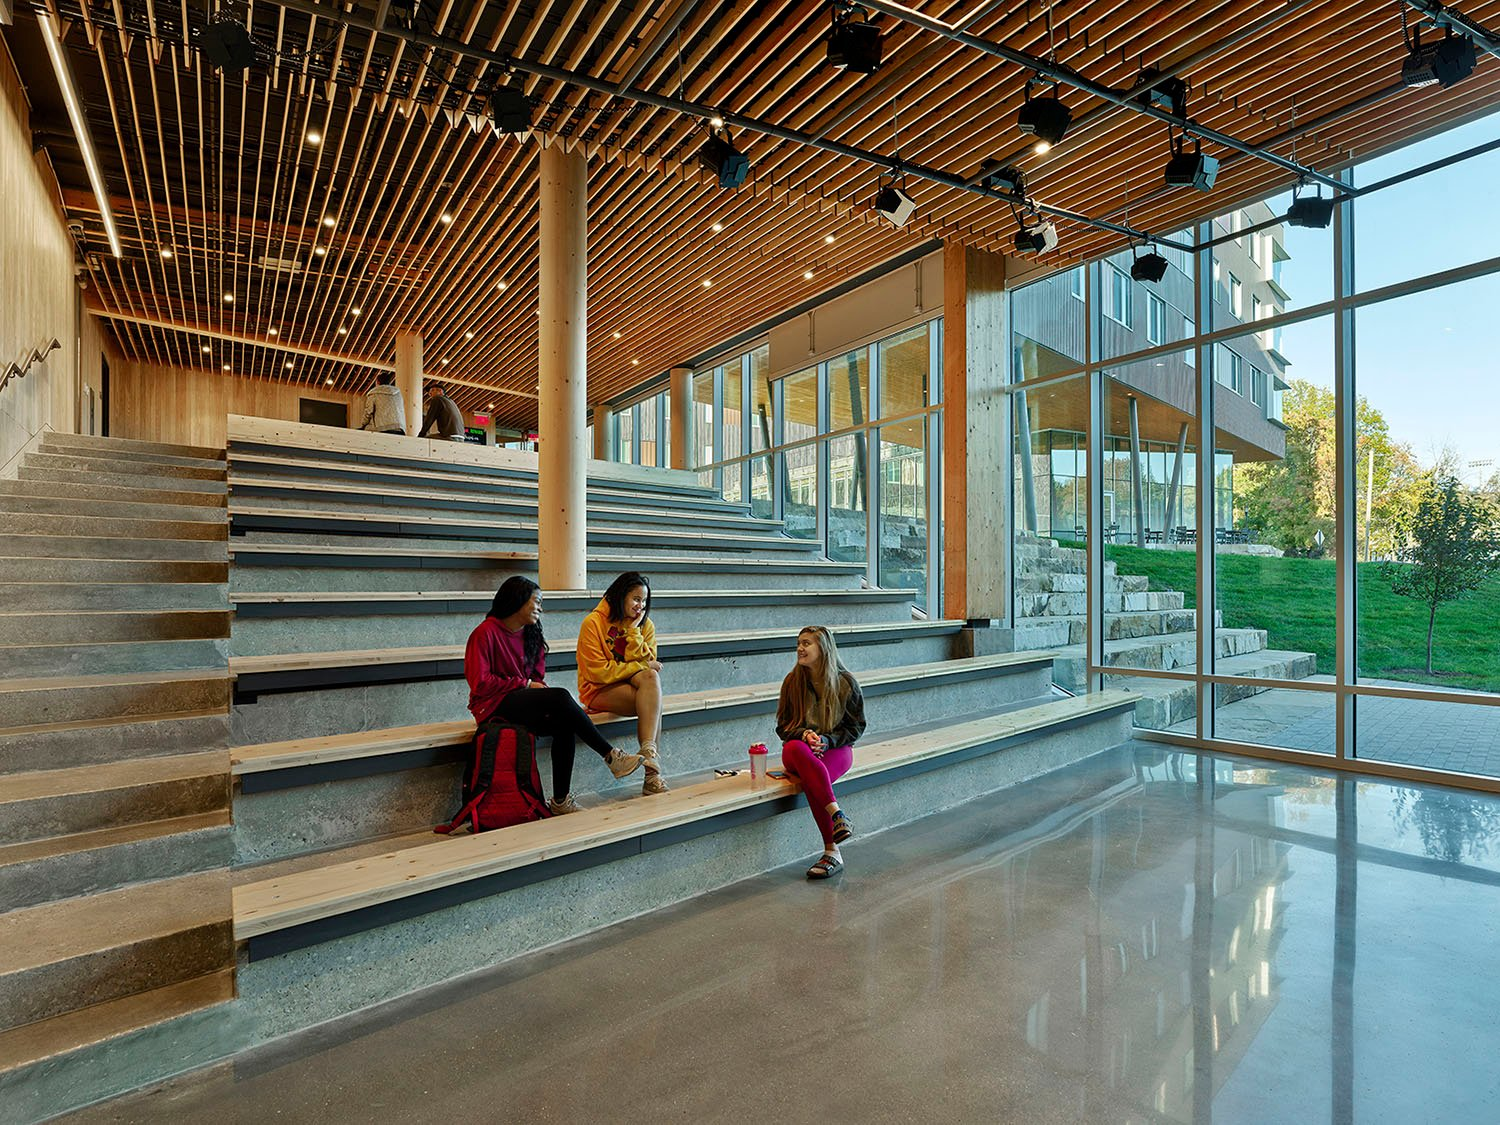 Performance Spaces Follow Slope and Exterior Steps Tim Hursley Photography